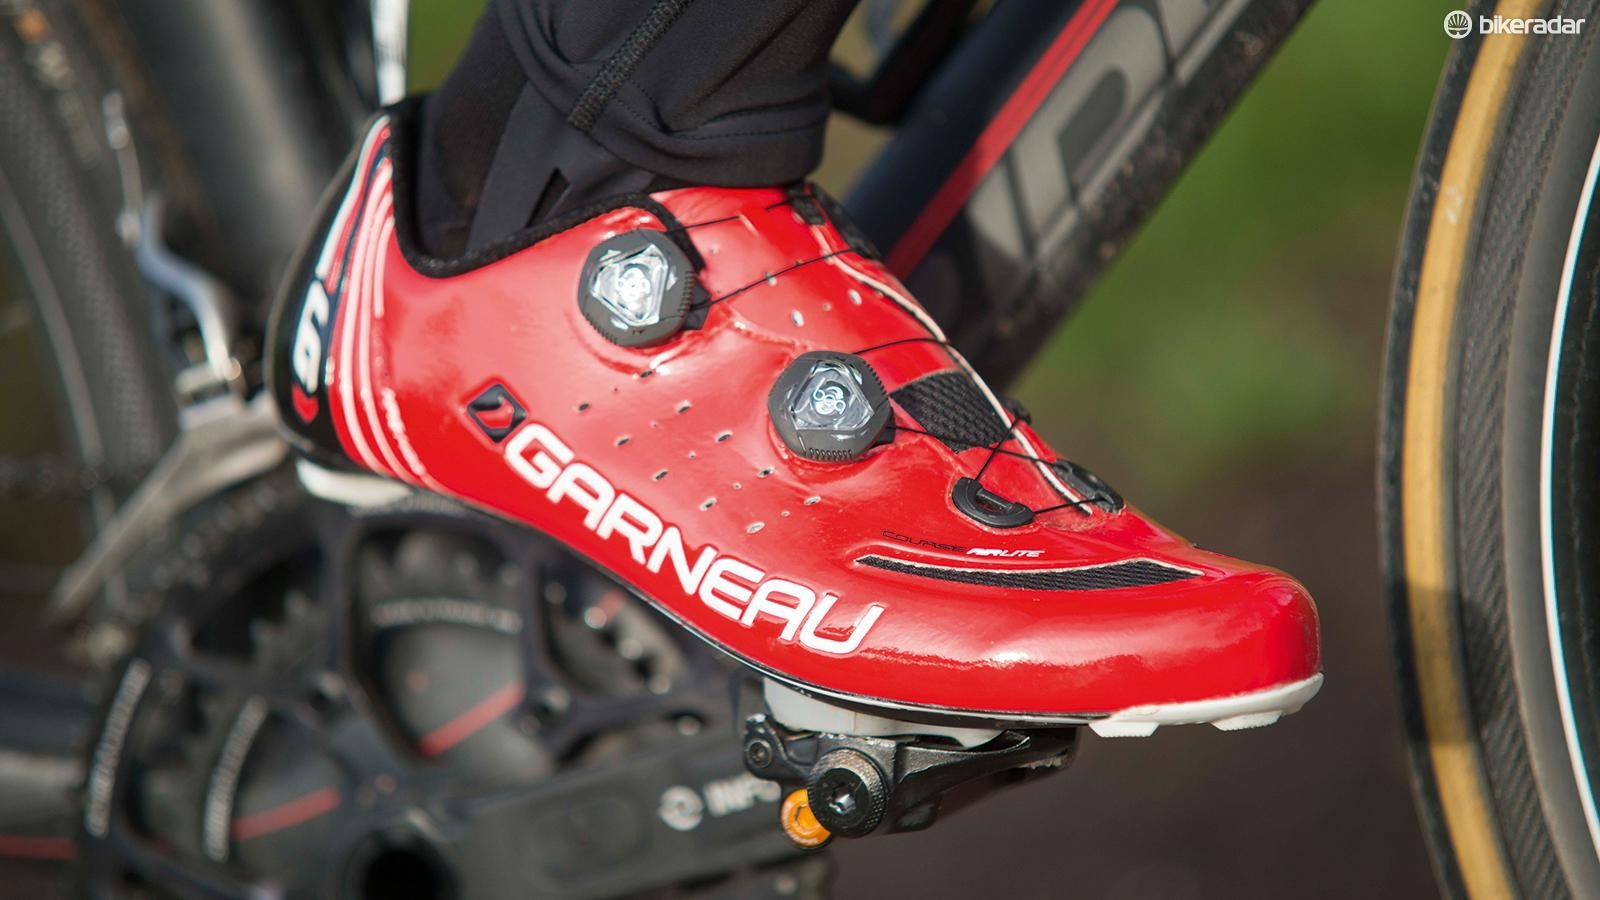 Louis Garneau's Course Airlite may not be the first name on the shopping list, but these are high-grade shoes worthy of your attention